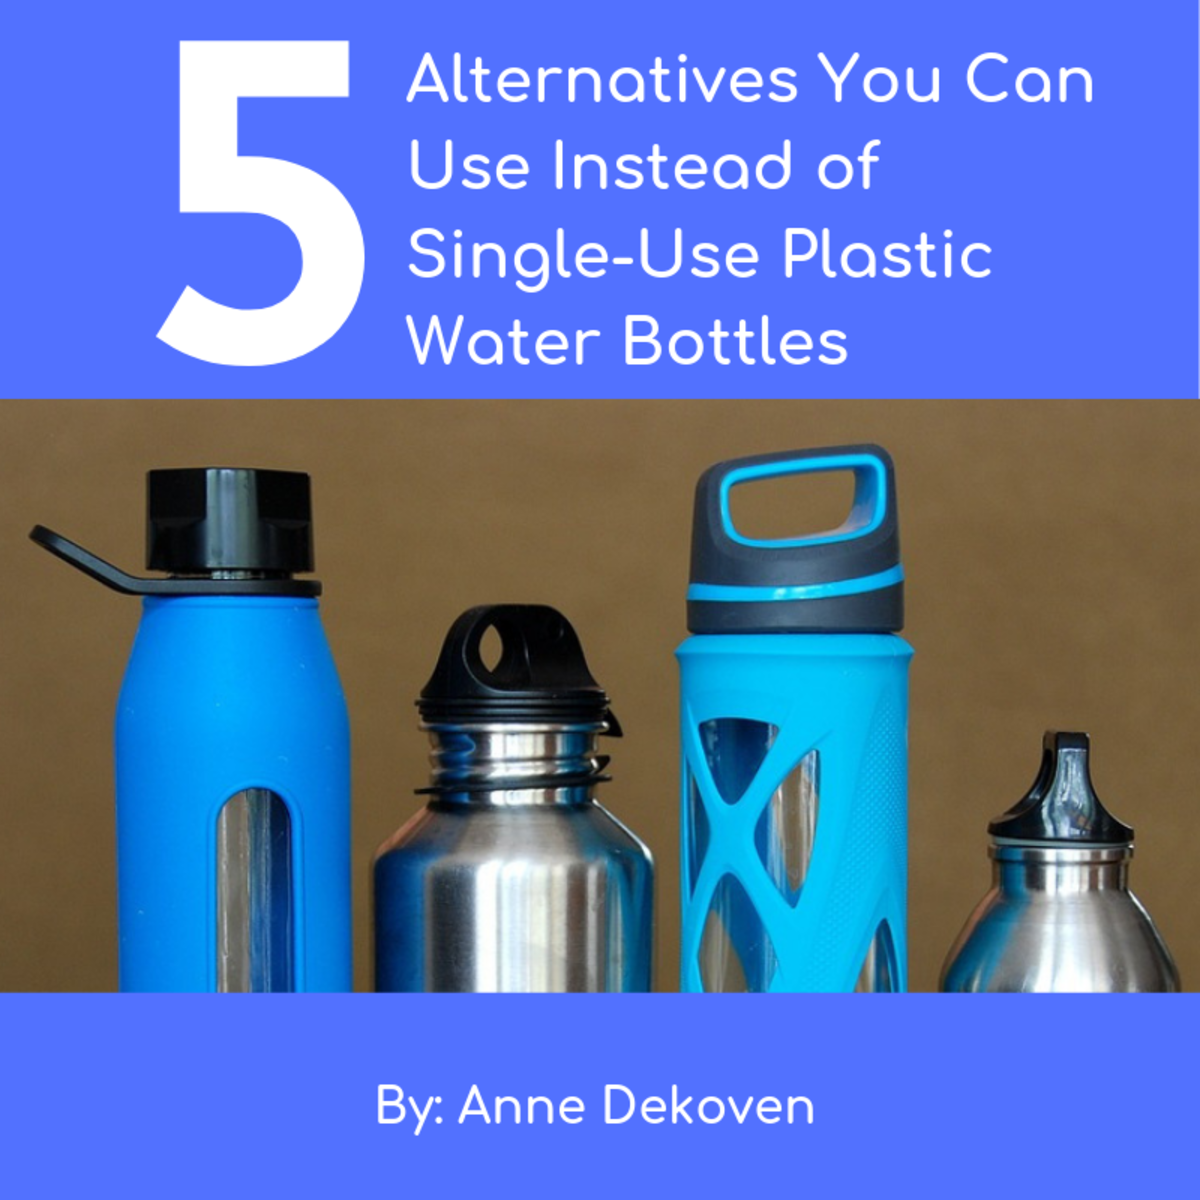 5 Alternatives You Can Use Instead of Single-Use Plastic Water Bottles